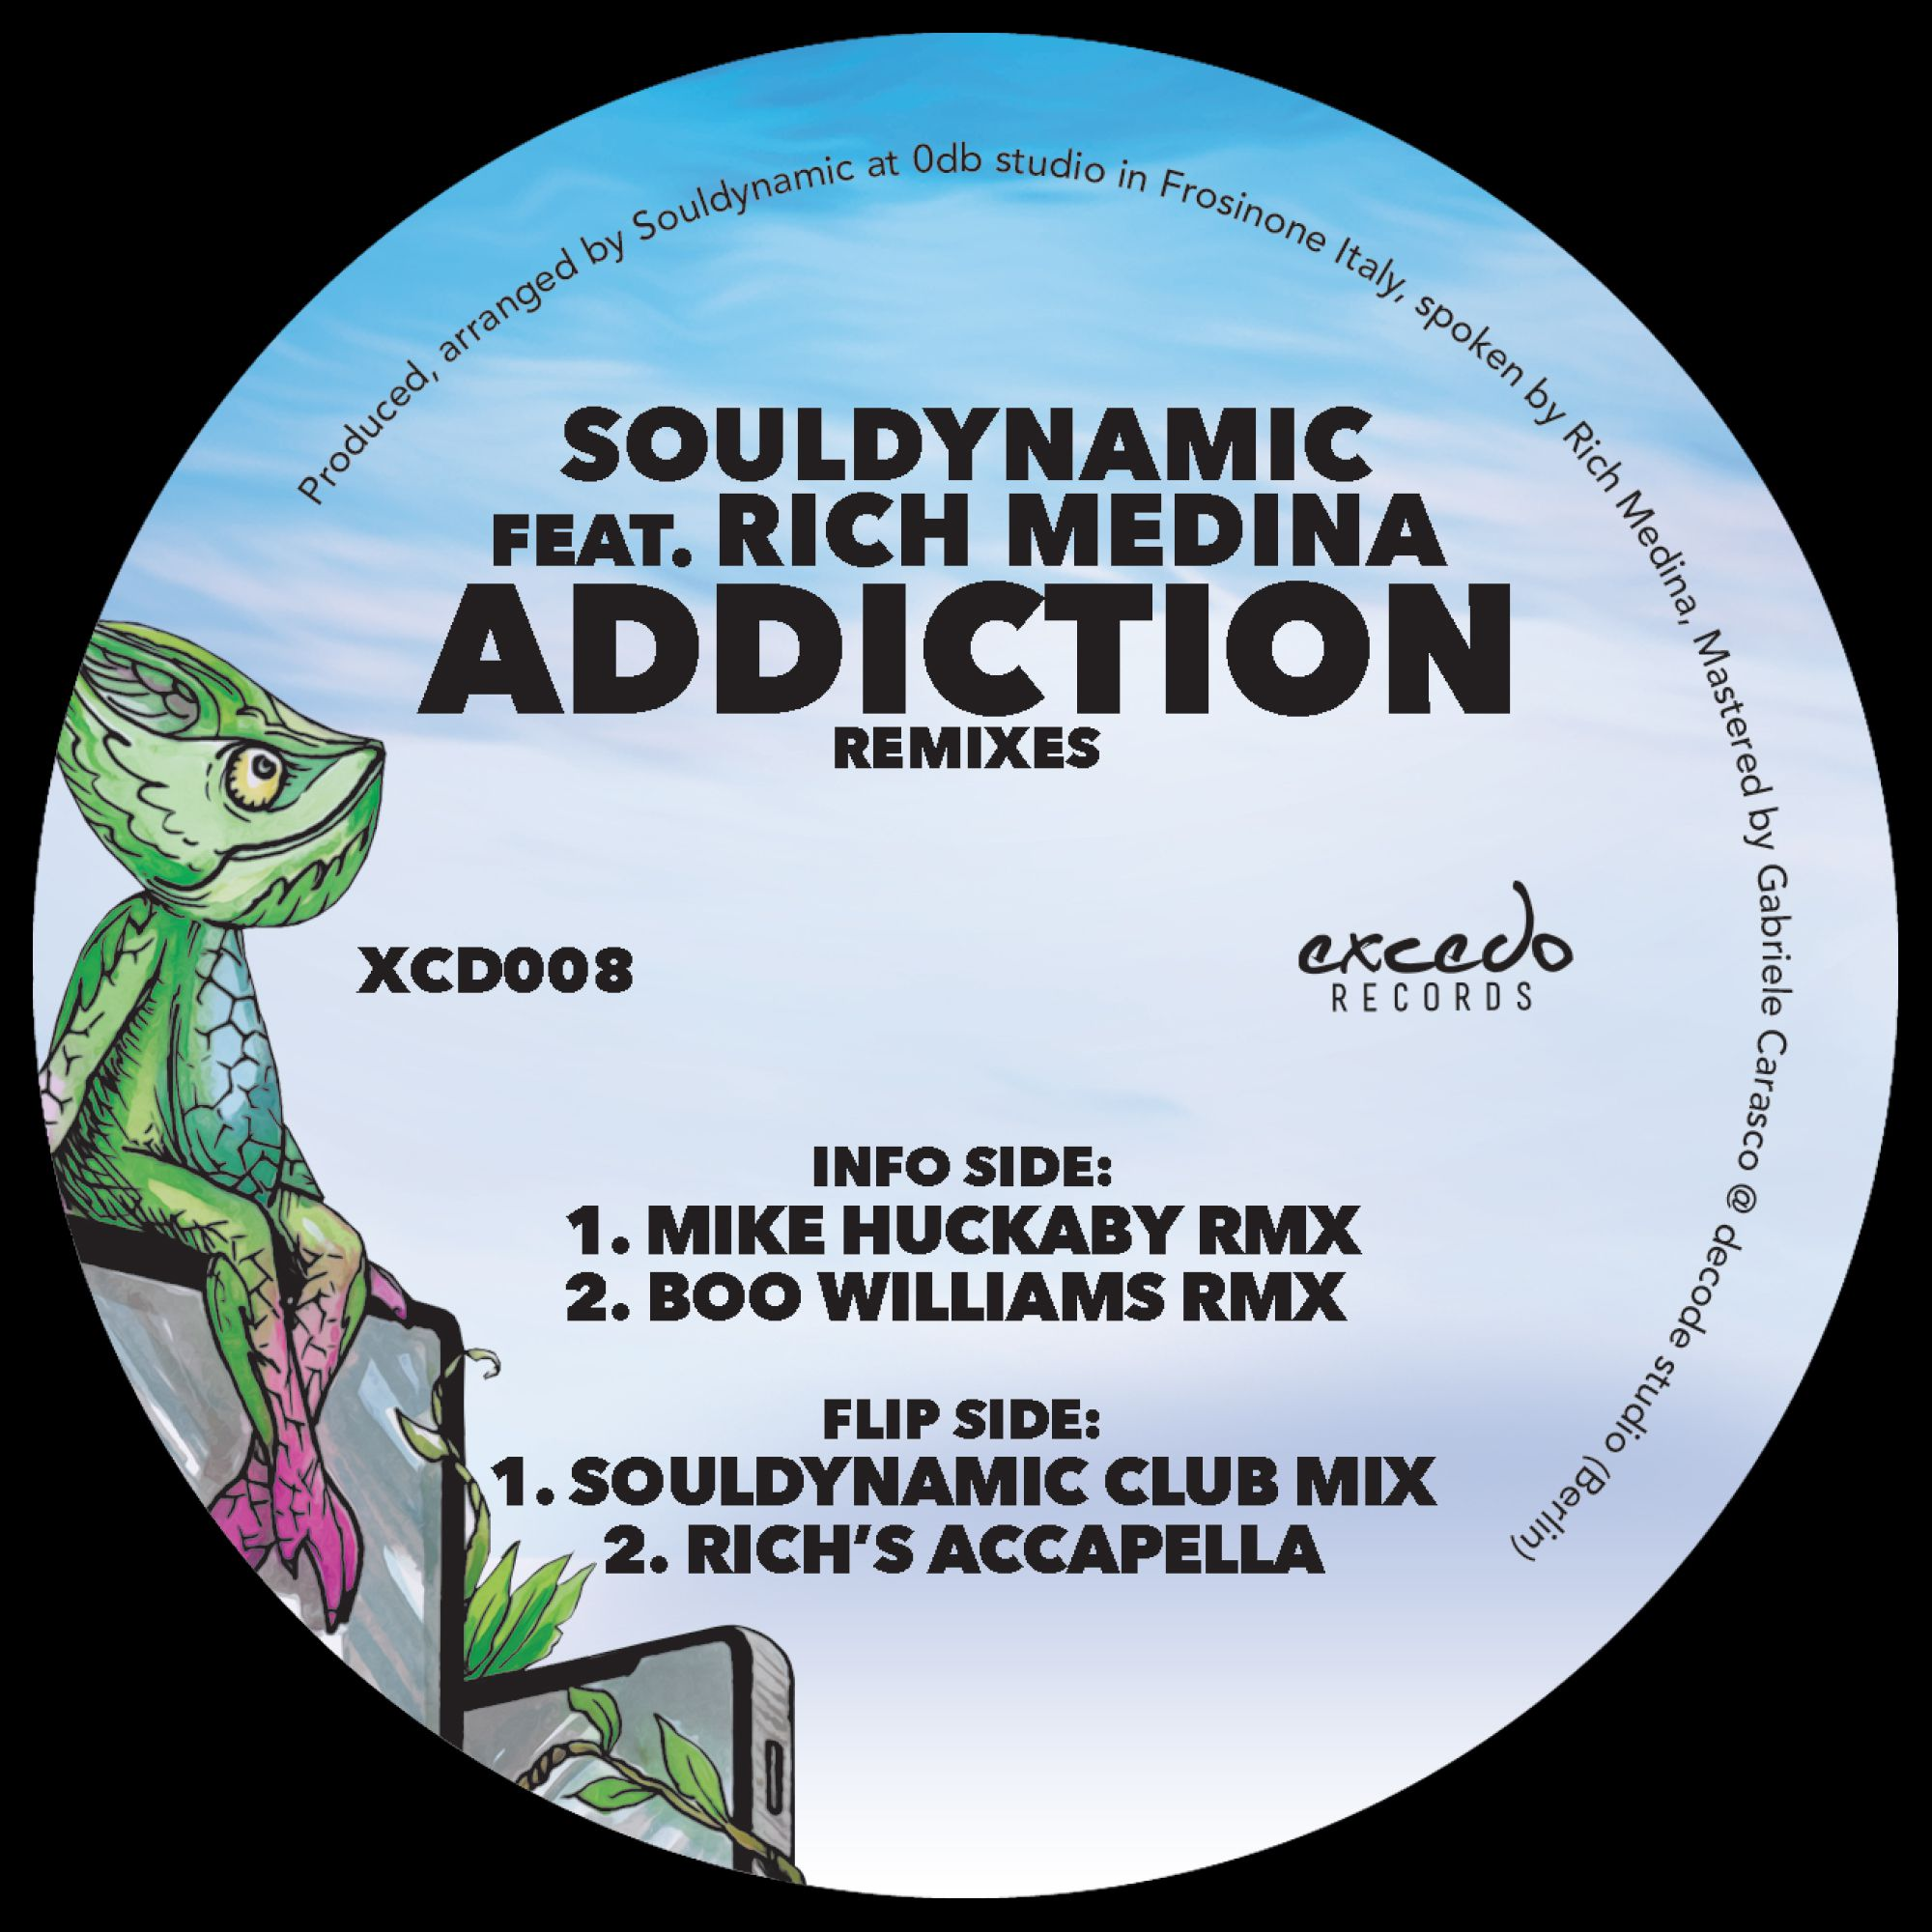 Souldynamic ft. Rich Medina - Addiction (including Mike Huckaby and Boo Williams Remixes)